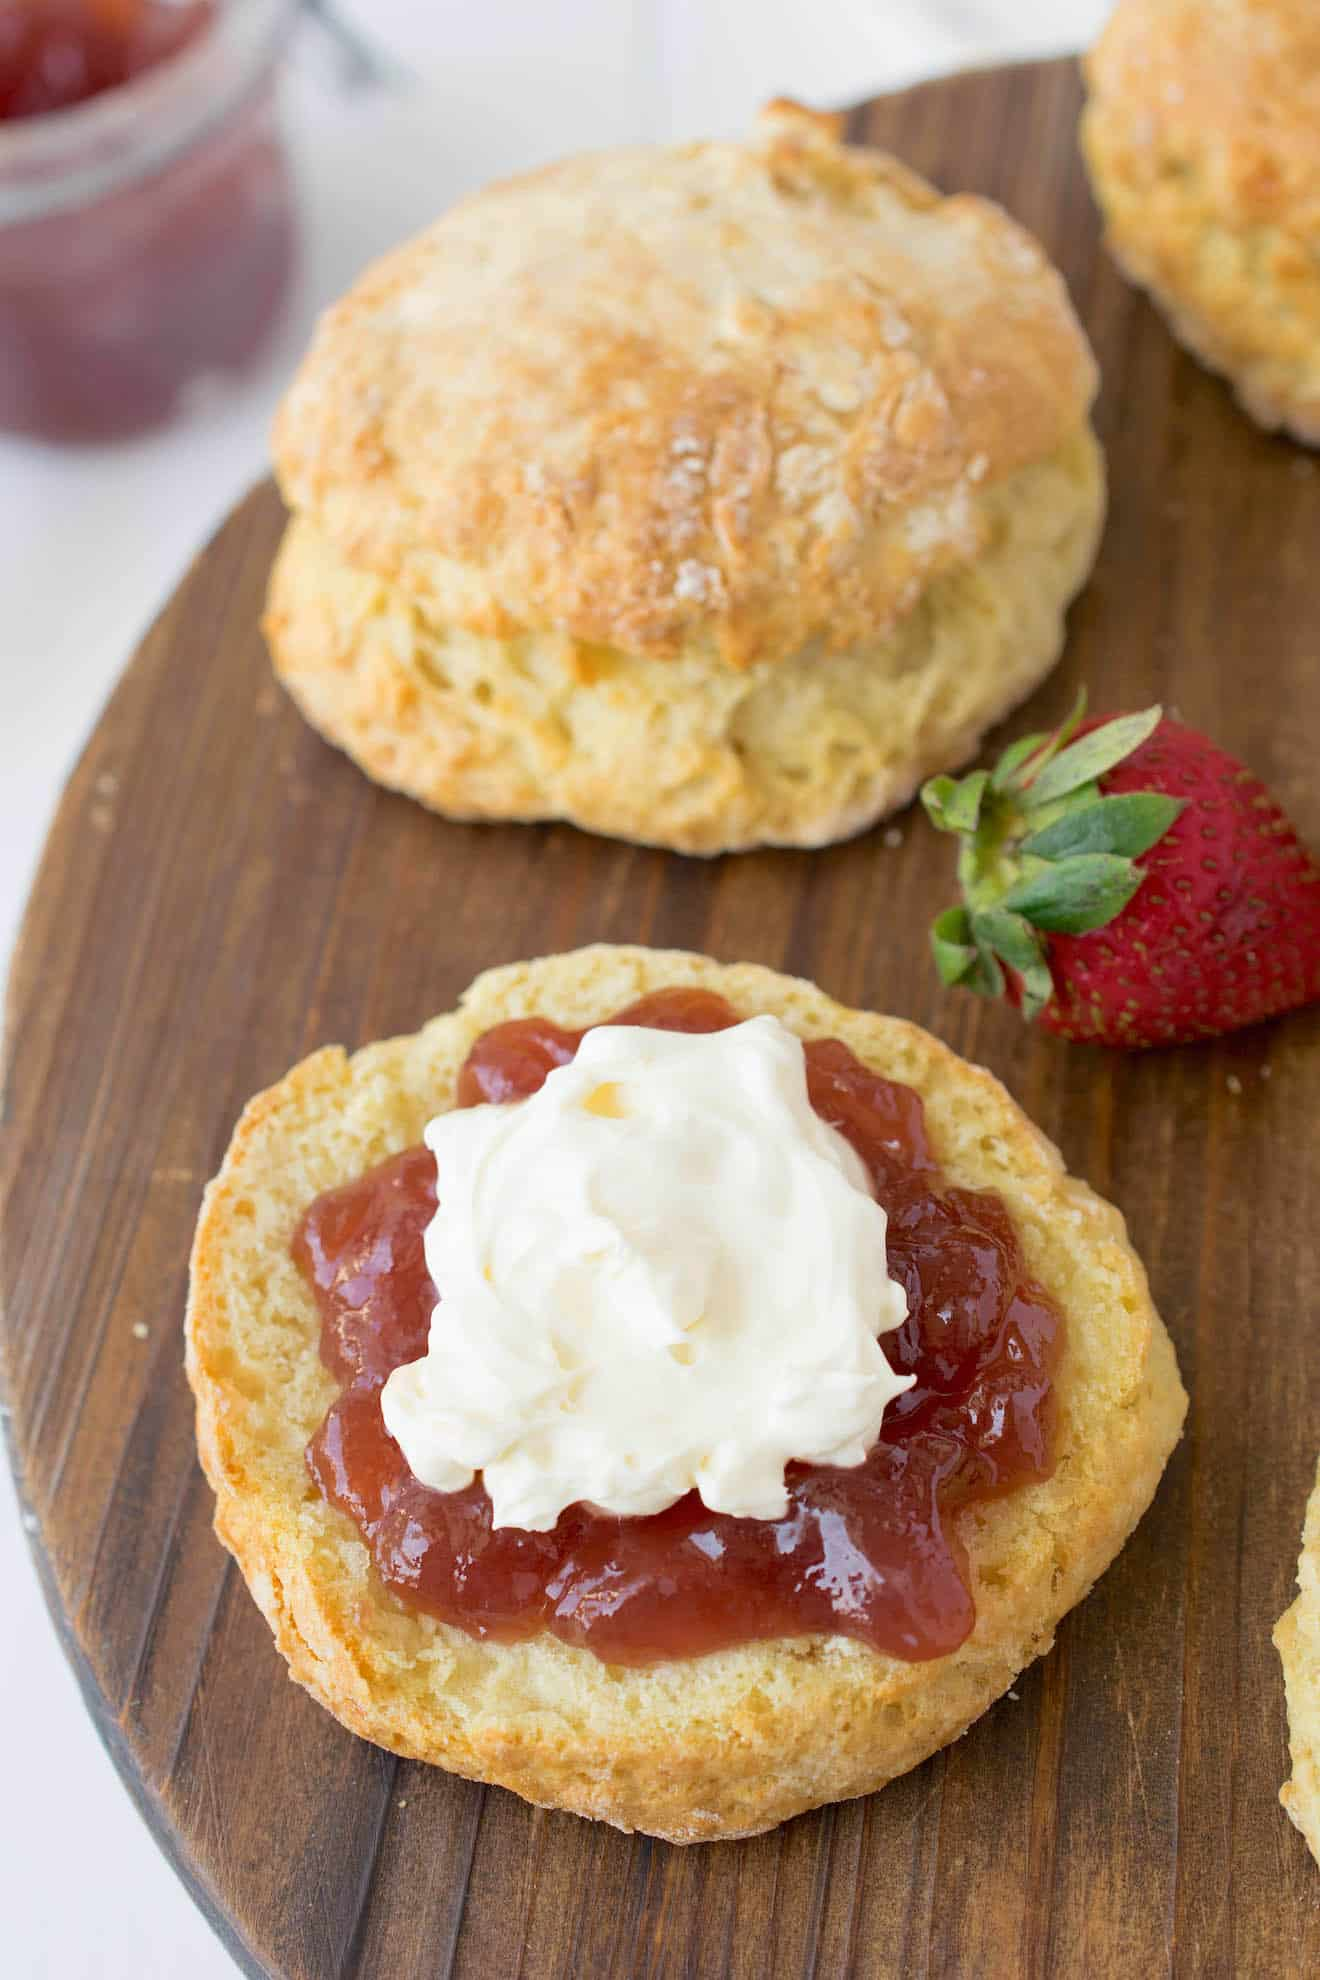 The bottom half of a scone topped with jam and clotted cream